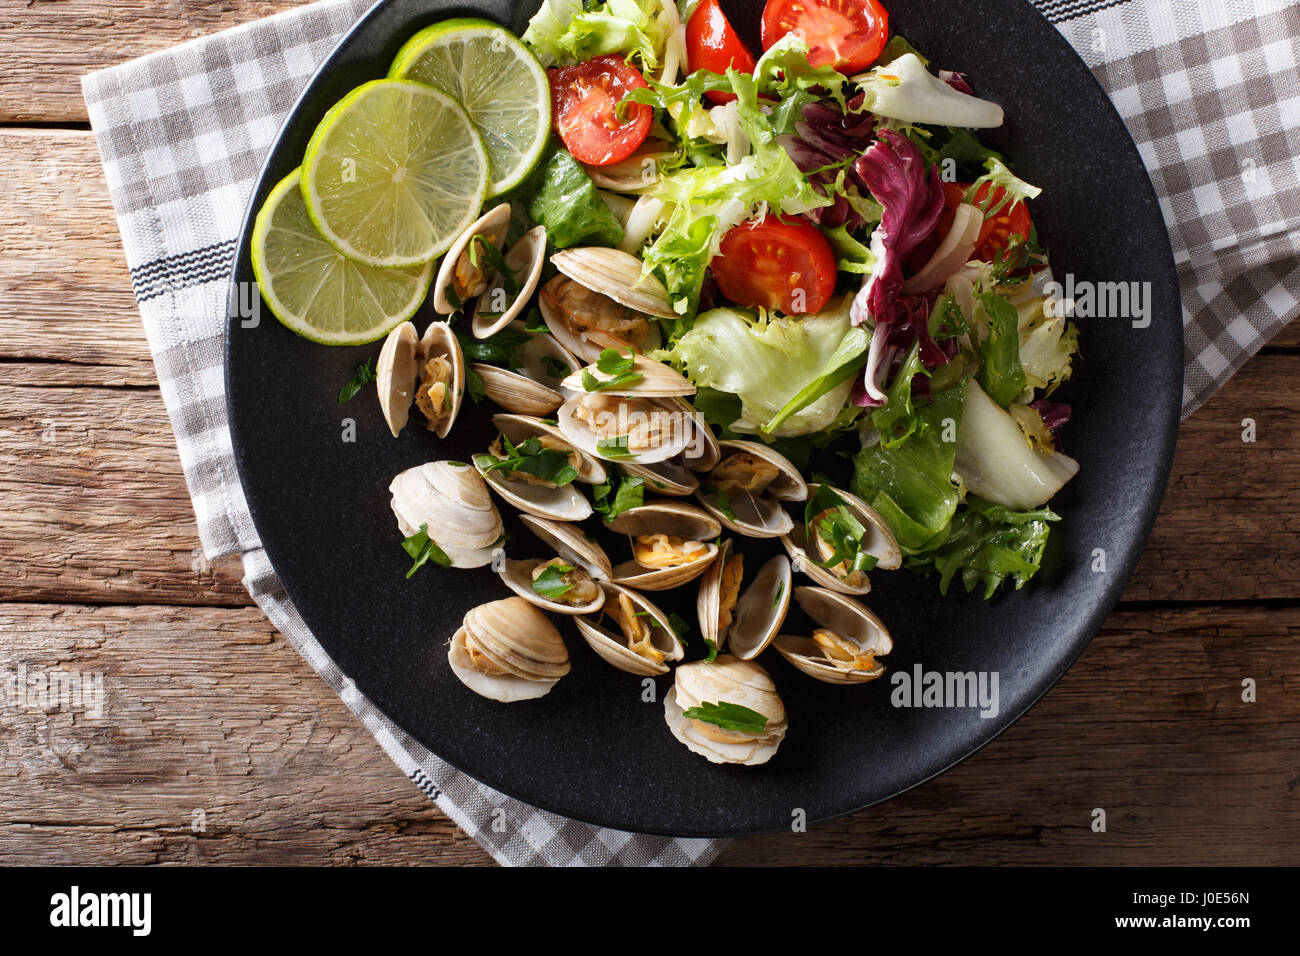 Delicatessen clams with lime and salad of fresh vegetables close-up on a plate. Horizontal view from above - Stock Image